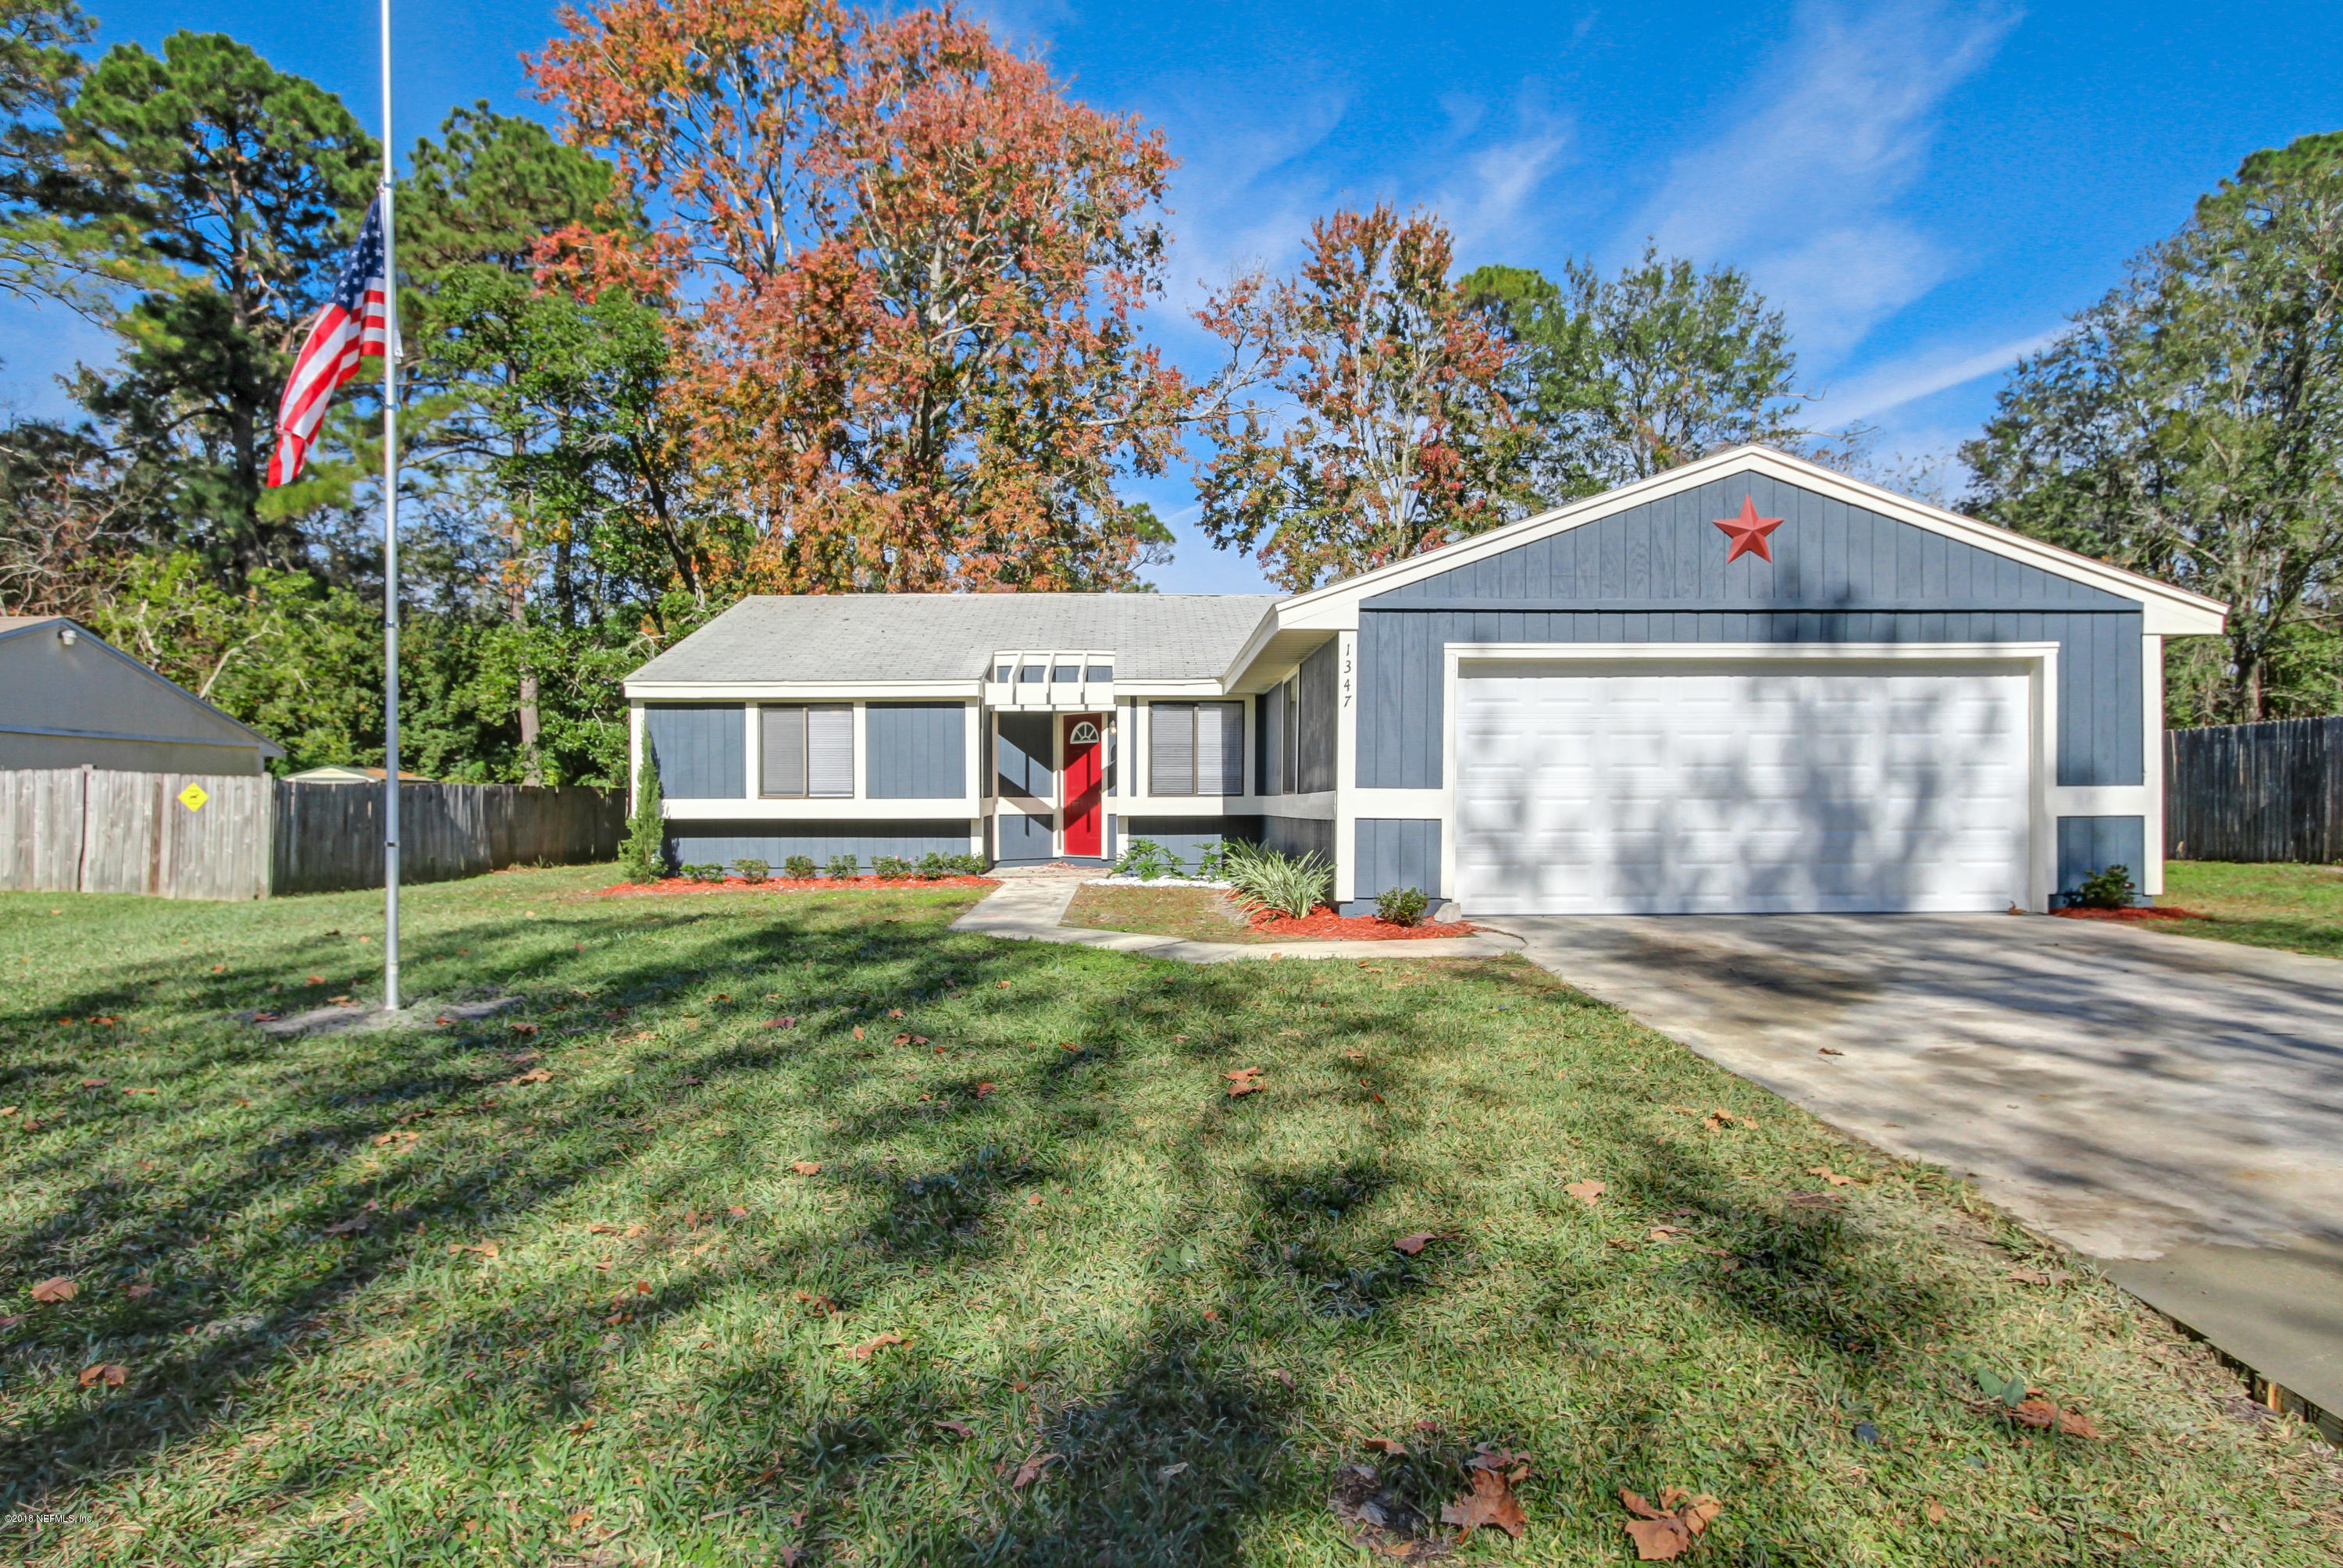 1347 BEE, ORANGE PARK, FLORIDA 32065, 3 Bedrooms Bedrooms, ,2 BathroomsBathrooms,Residential - single family,For sale,BEE,970090